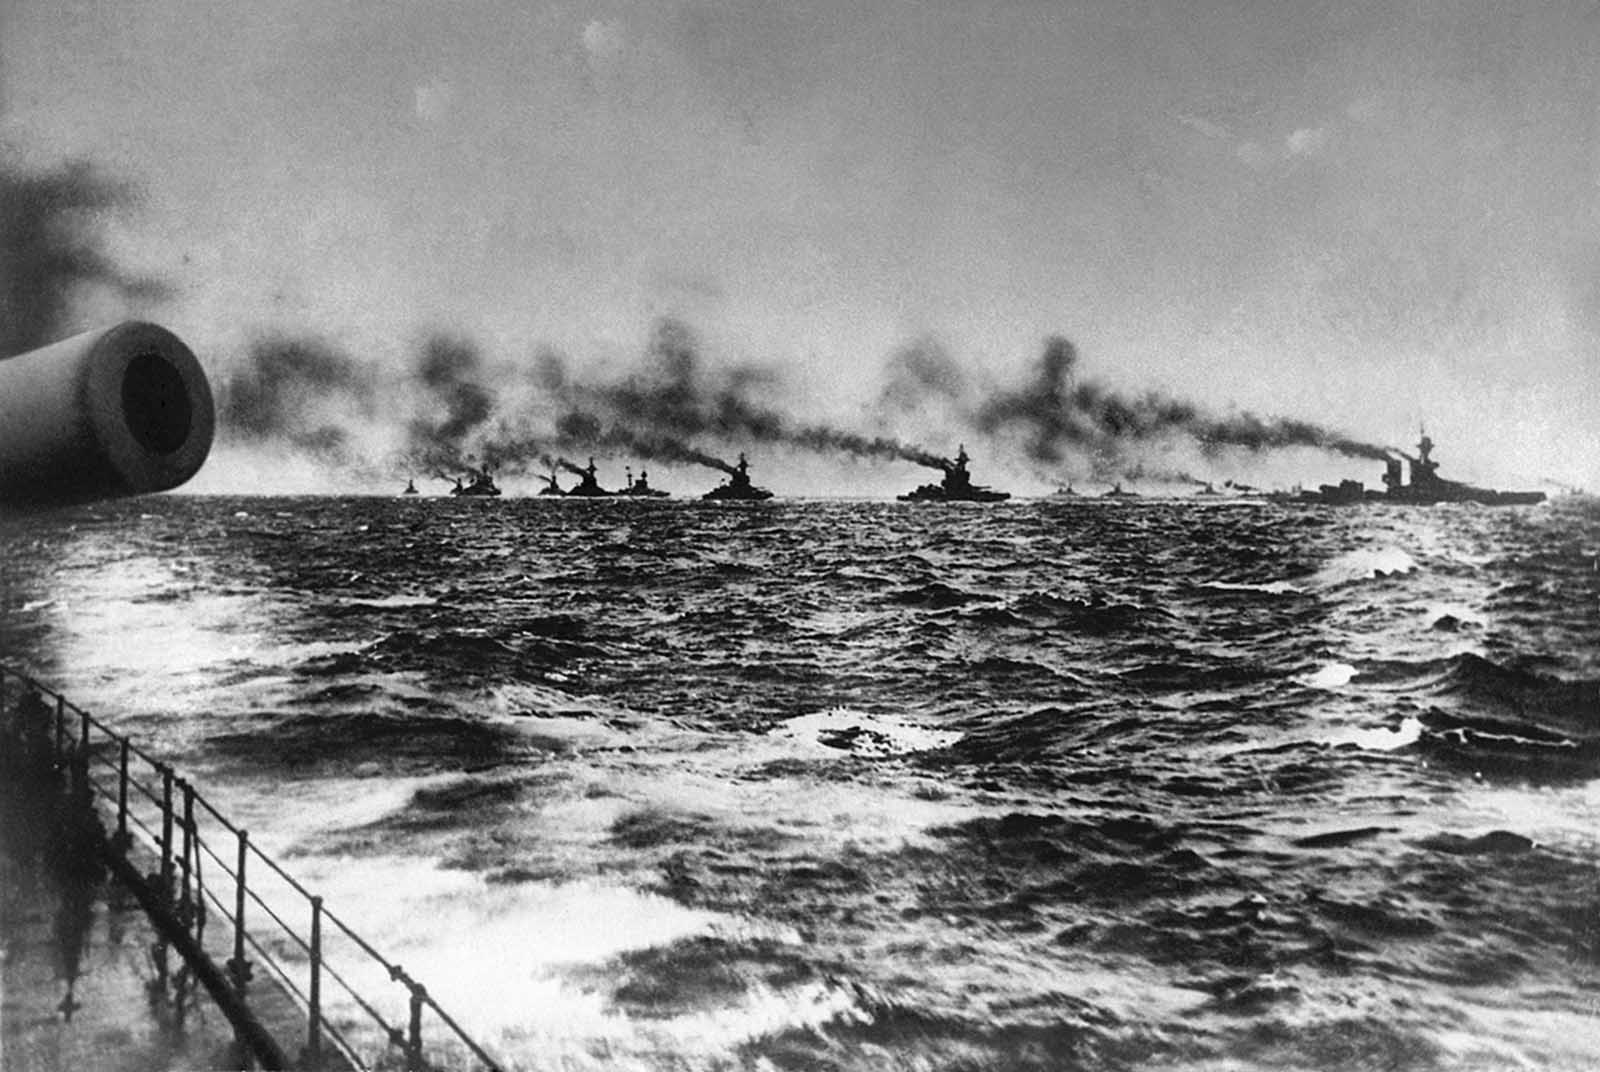 The British Grand Fleet under admiral John Jellicoe on her way to meet the Imperial German Navy's fleet for the Battle of Jutland in the North Sea on May 31, 1916.